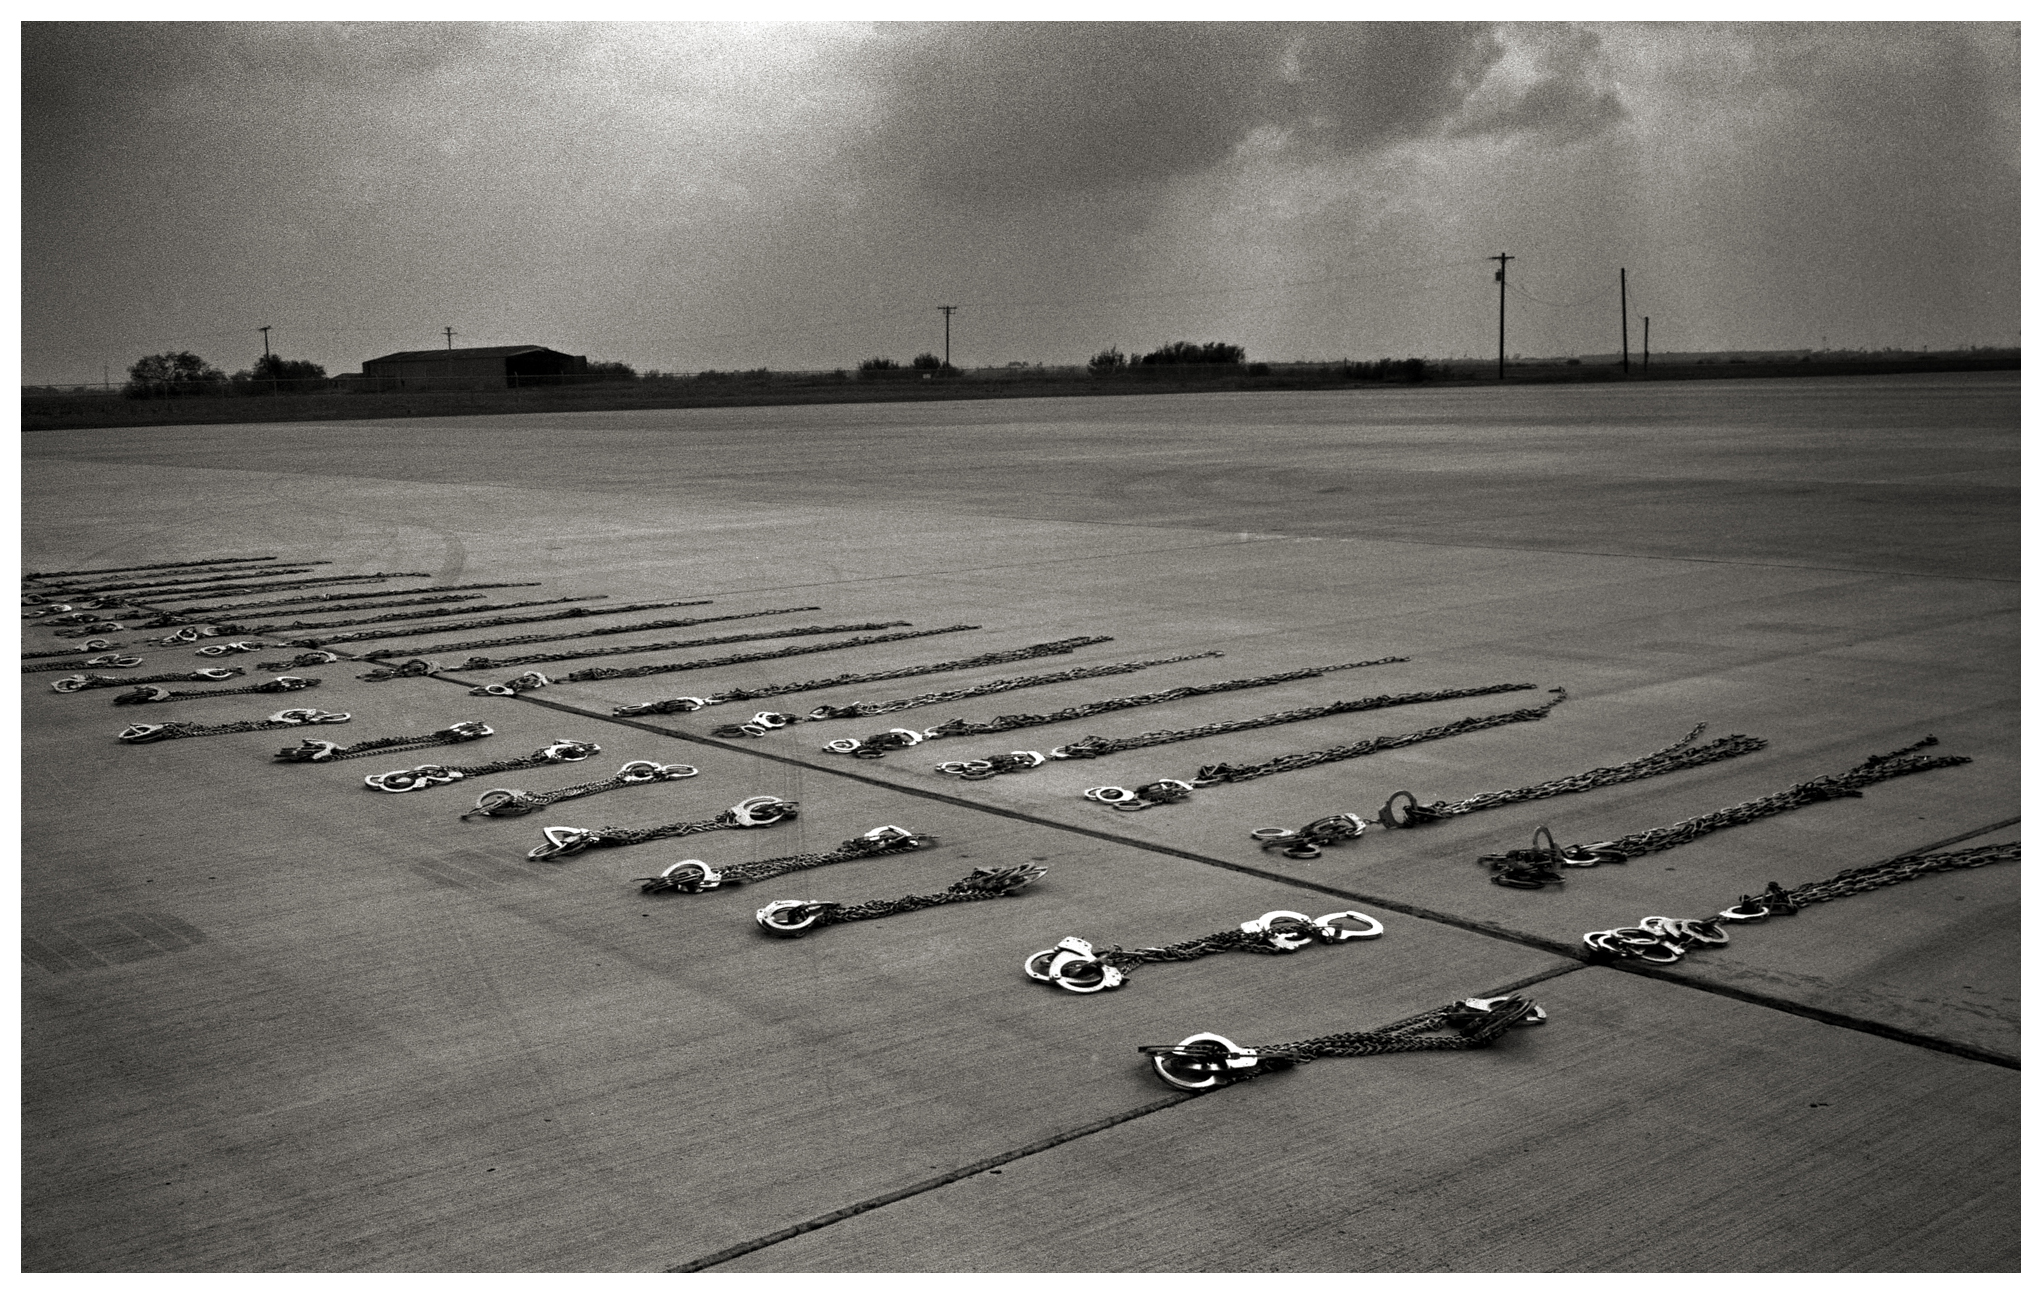 Handcuffs lie on the ground before being put away after shackling a group of undocumented immigrants who were being transported from Pennsylvania to the border crossing at Hidalgo. All the men had spent time in county jail in Pennsylvania and were sent back acrosss the border to Reynosa, Tamaulipas, Mexico.Thousands of Mexican and Central American migrants are returned to their home countries each year by the United States Immigration and Customs Enforcement or ICE. The agency operates about 48 flights each week to deport people from the United States back to their country of origin. Depending on the crime the migrants commit will determine whether or not they will be shackled throughout the flight. The flights originate from various parts of the United States. Approximately 400,000 people were deported this past year.